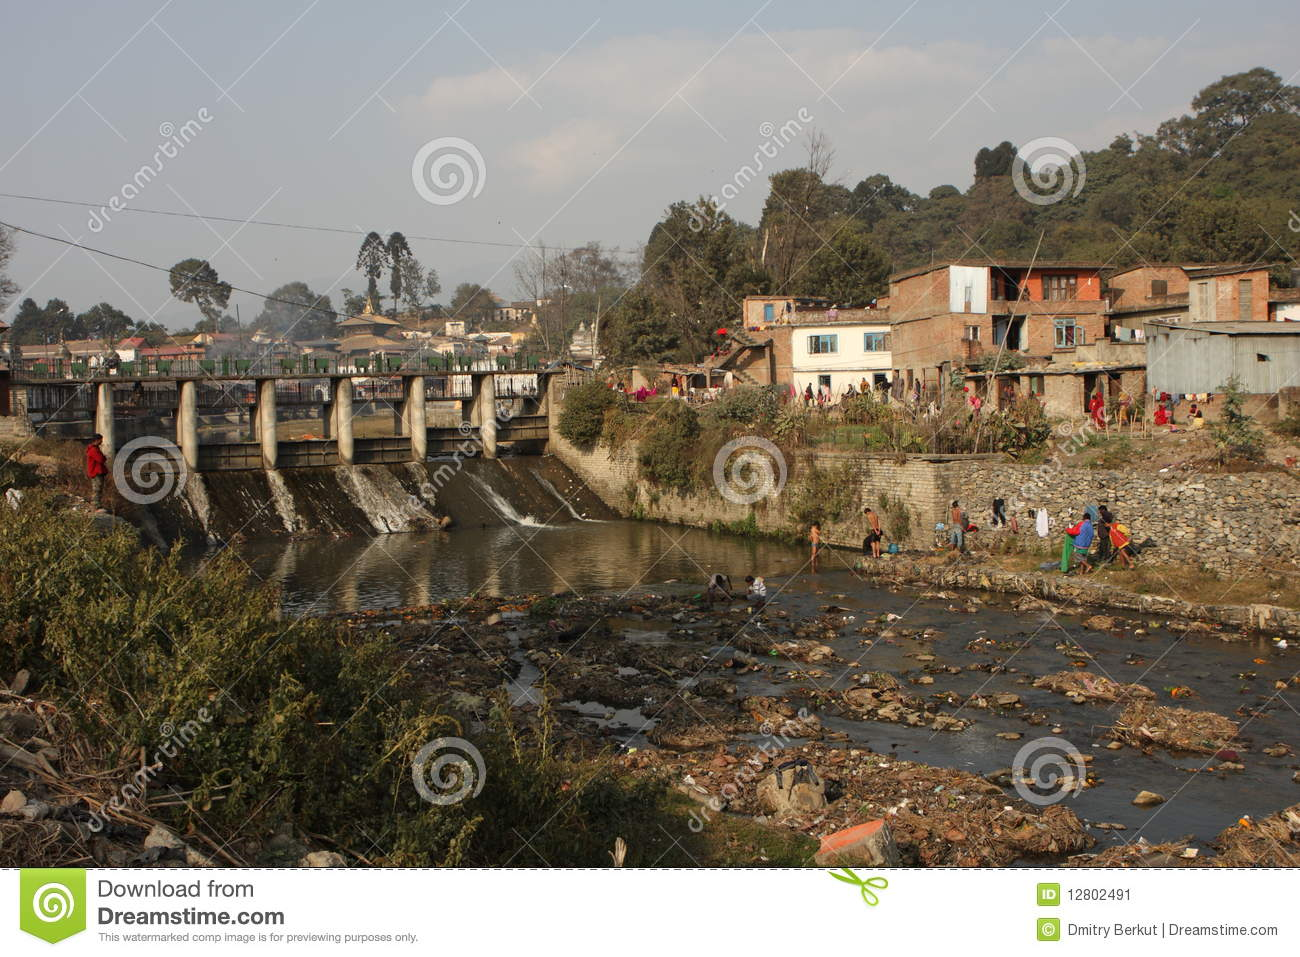 Ecological Problems Stock Image - Image: 12802451